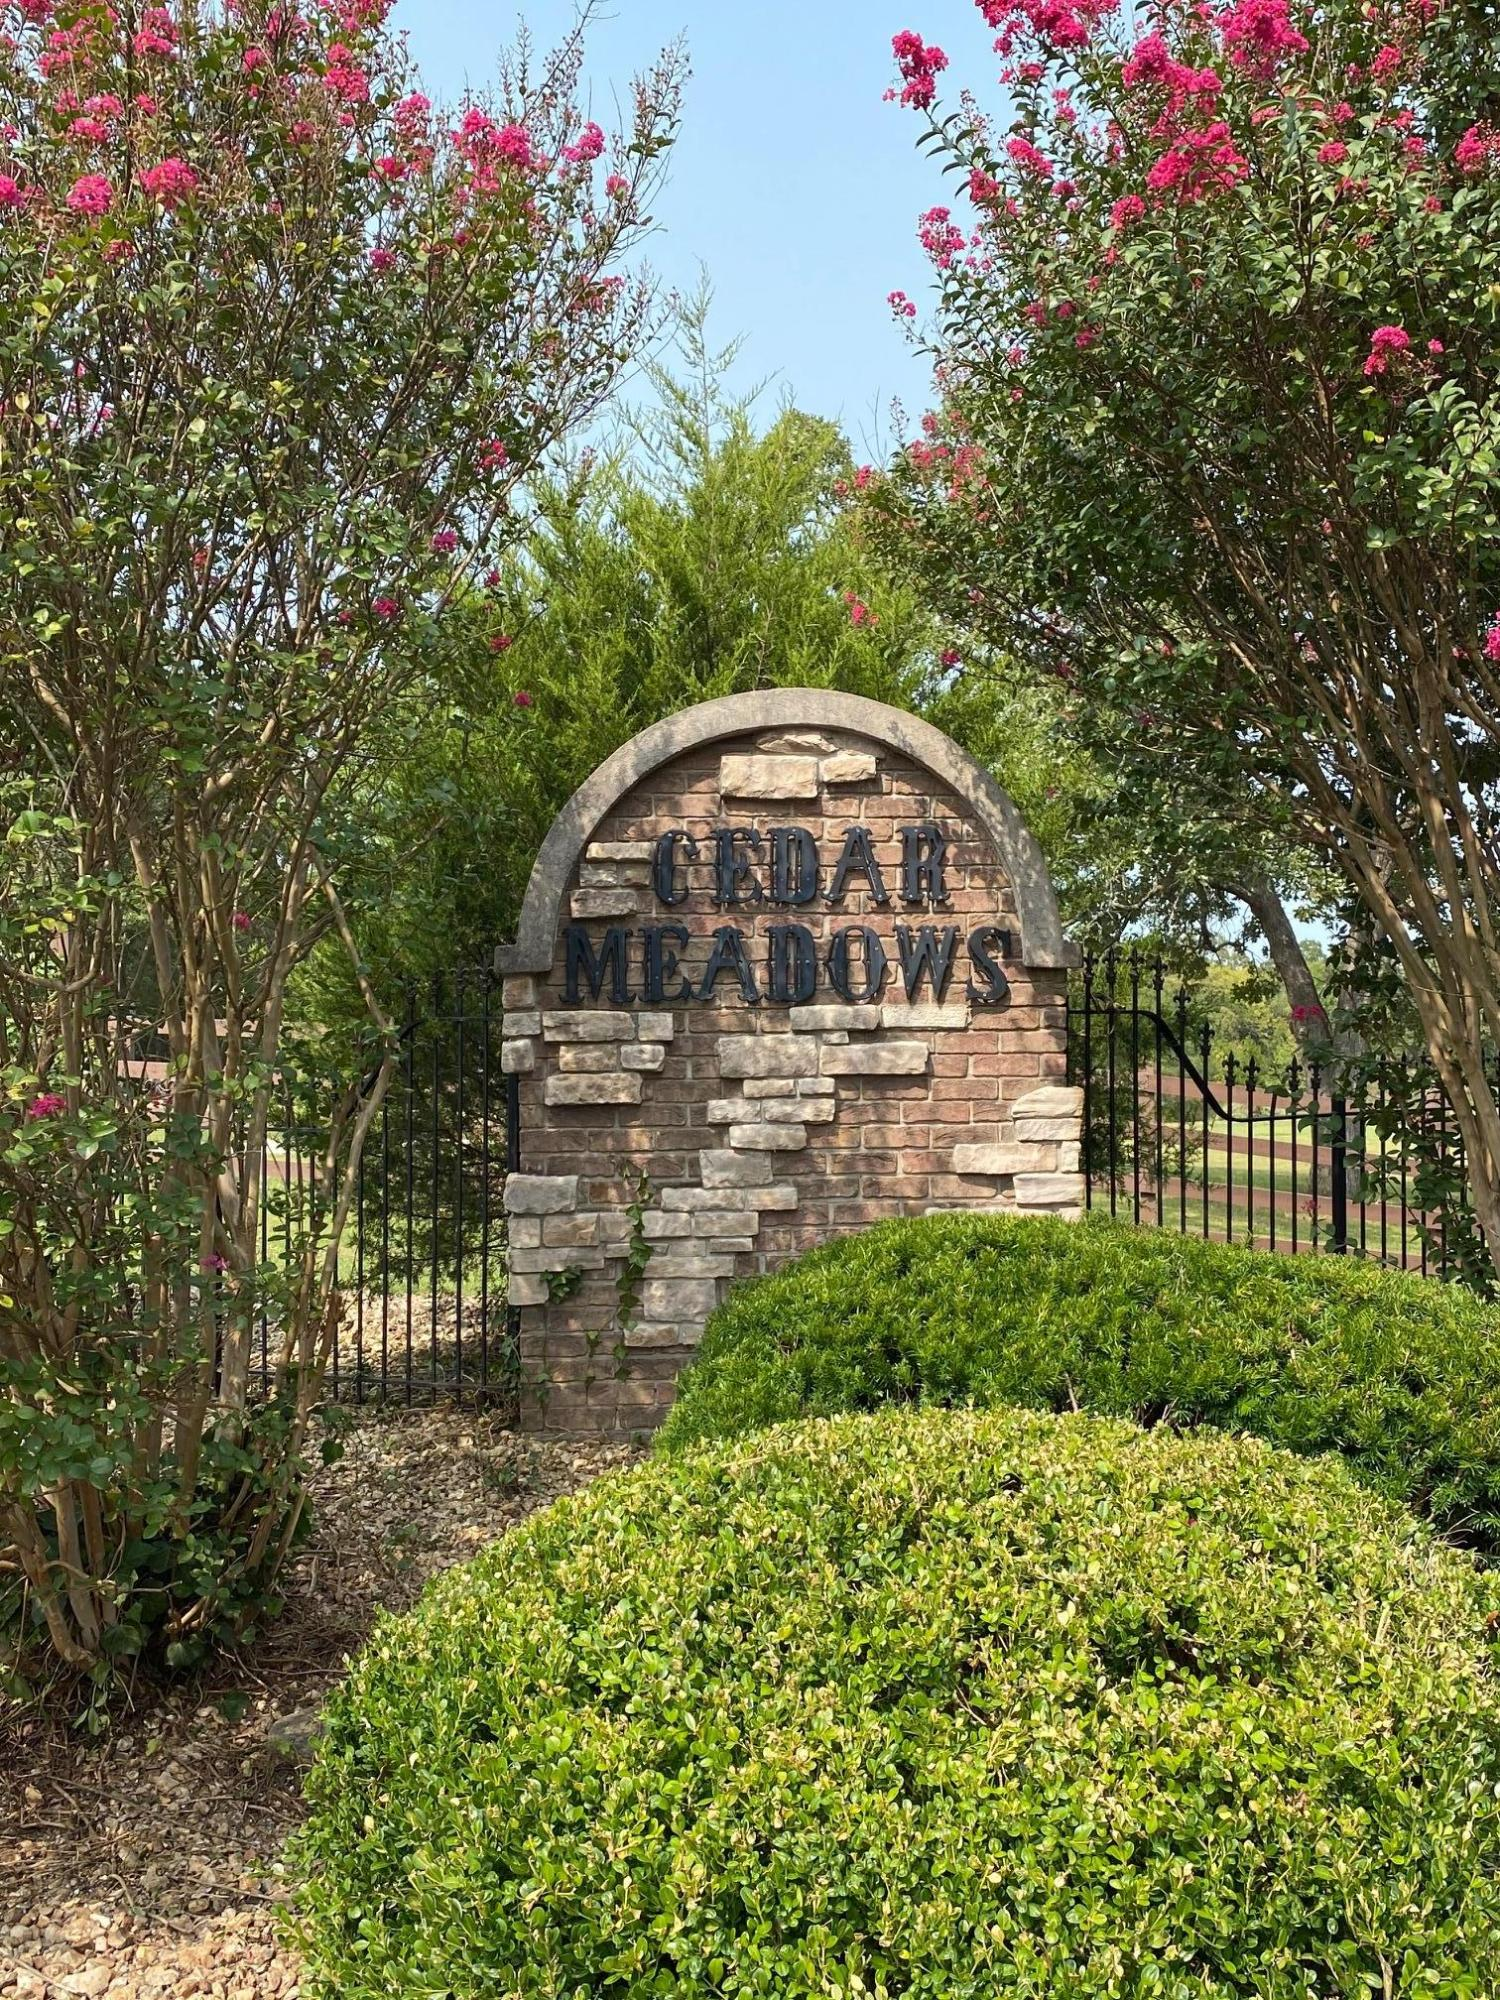 460 Cedar Meadows Lane Branson, MO 65616